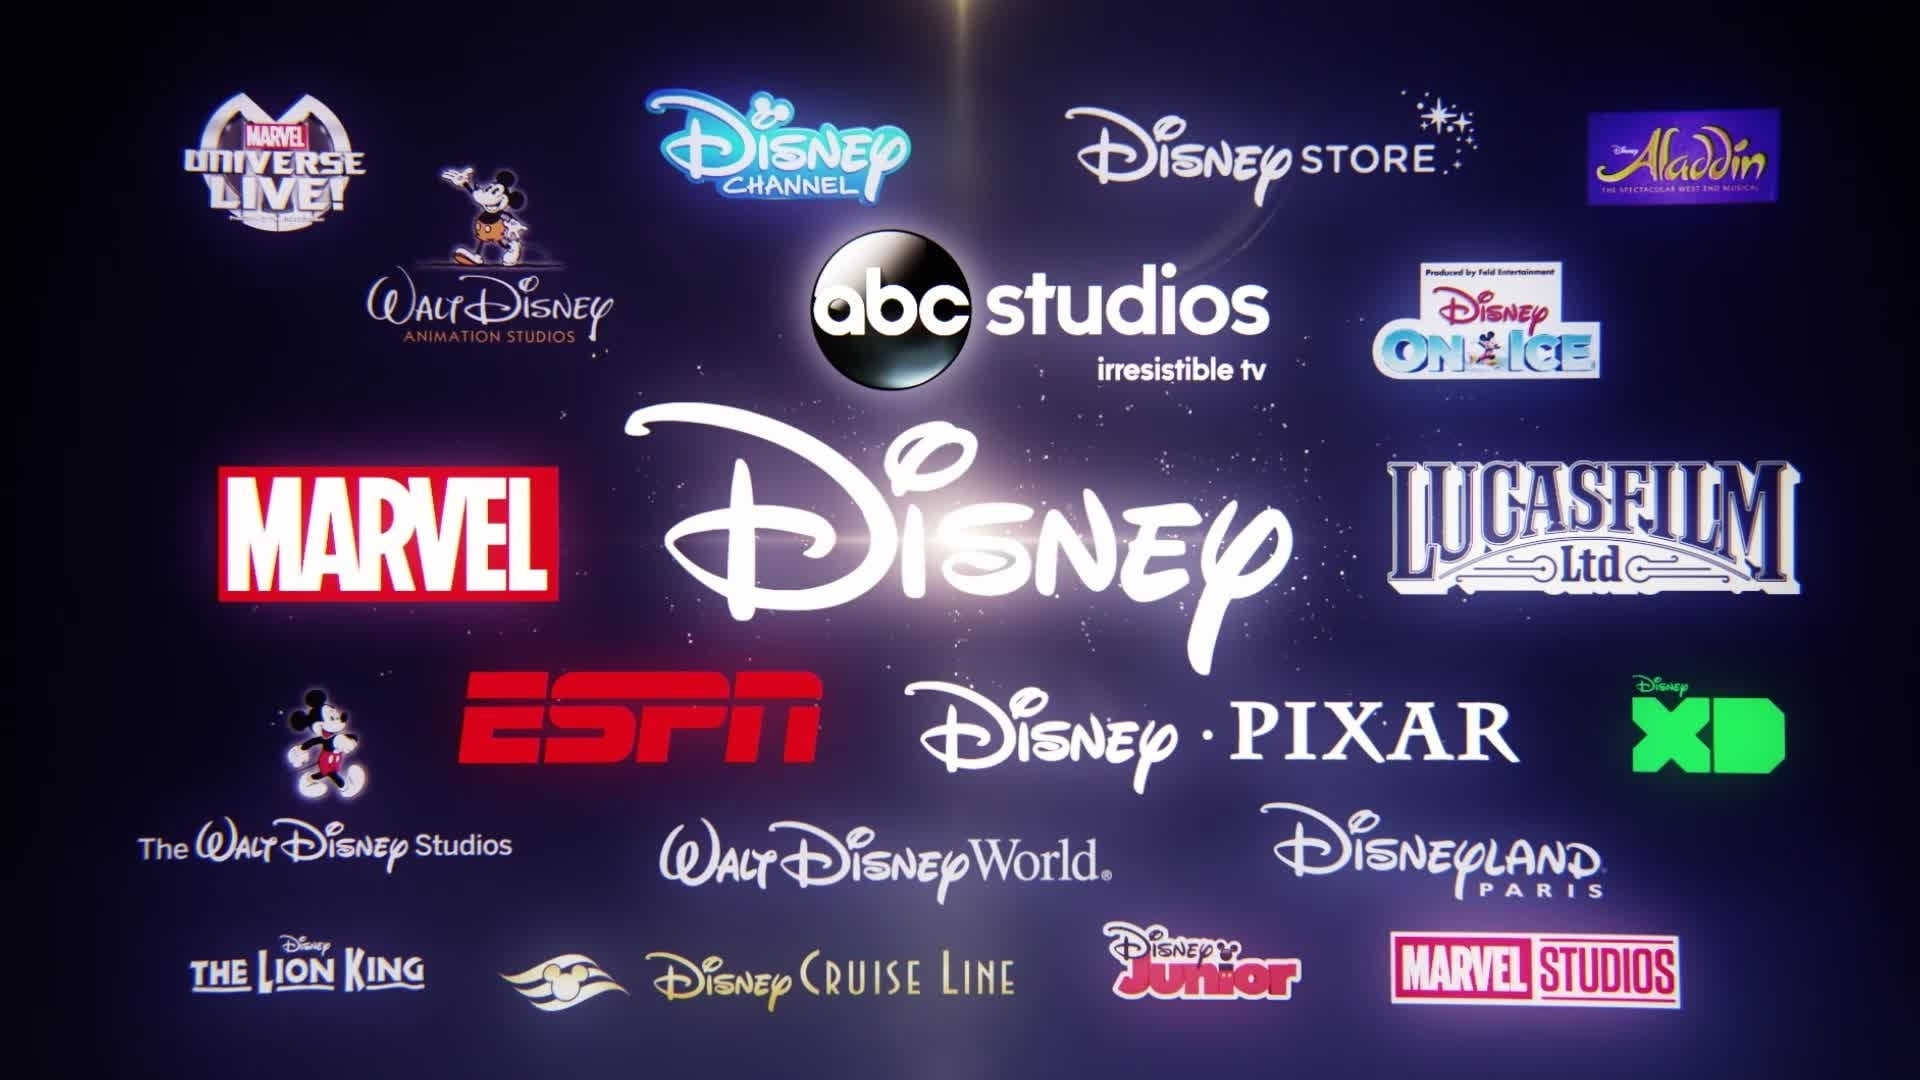 About Us - The Walt Disney Family of Companies Video (NO)